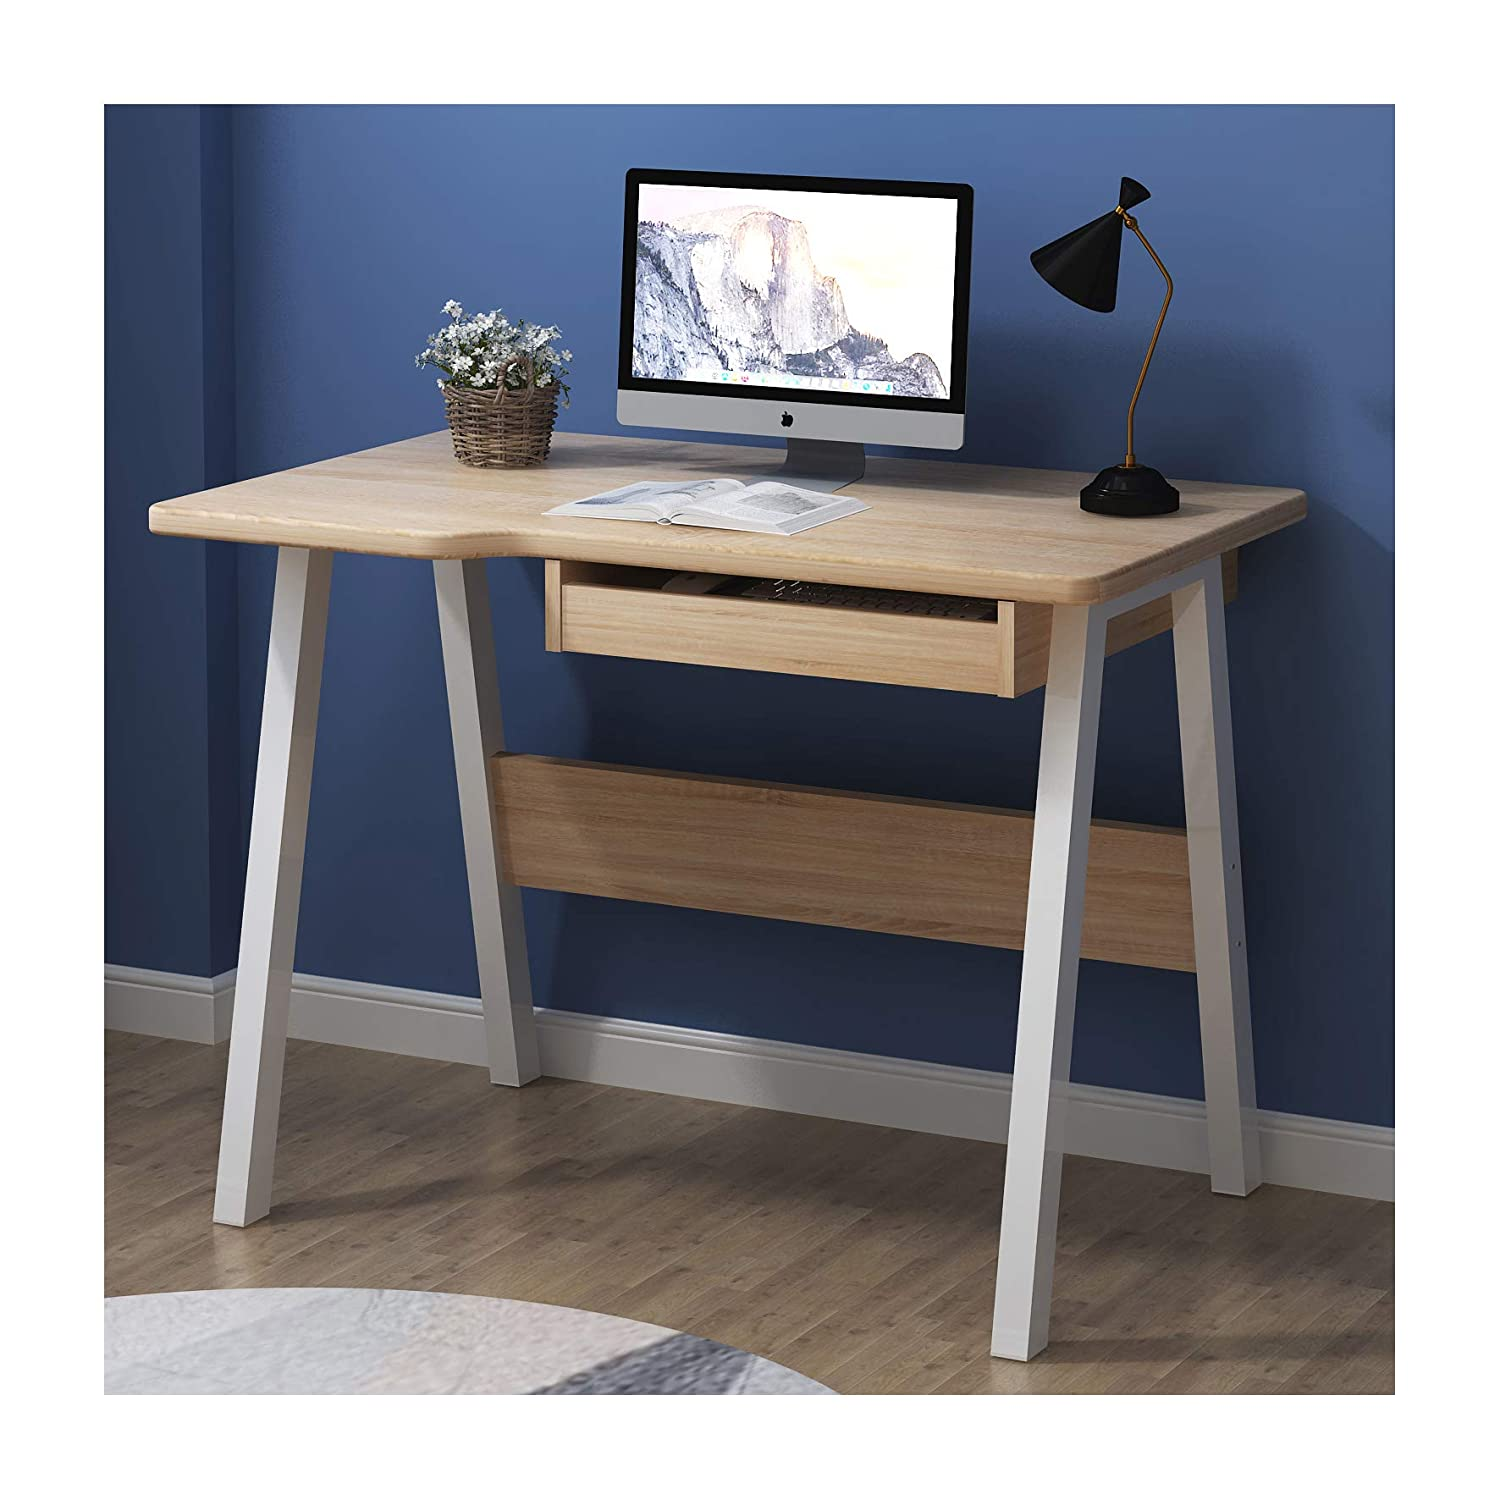 Cherry Tree Furniture Oak Colour Computer Desk Home Office Workstation Desk with Keyboard Tray